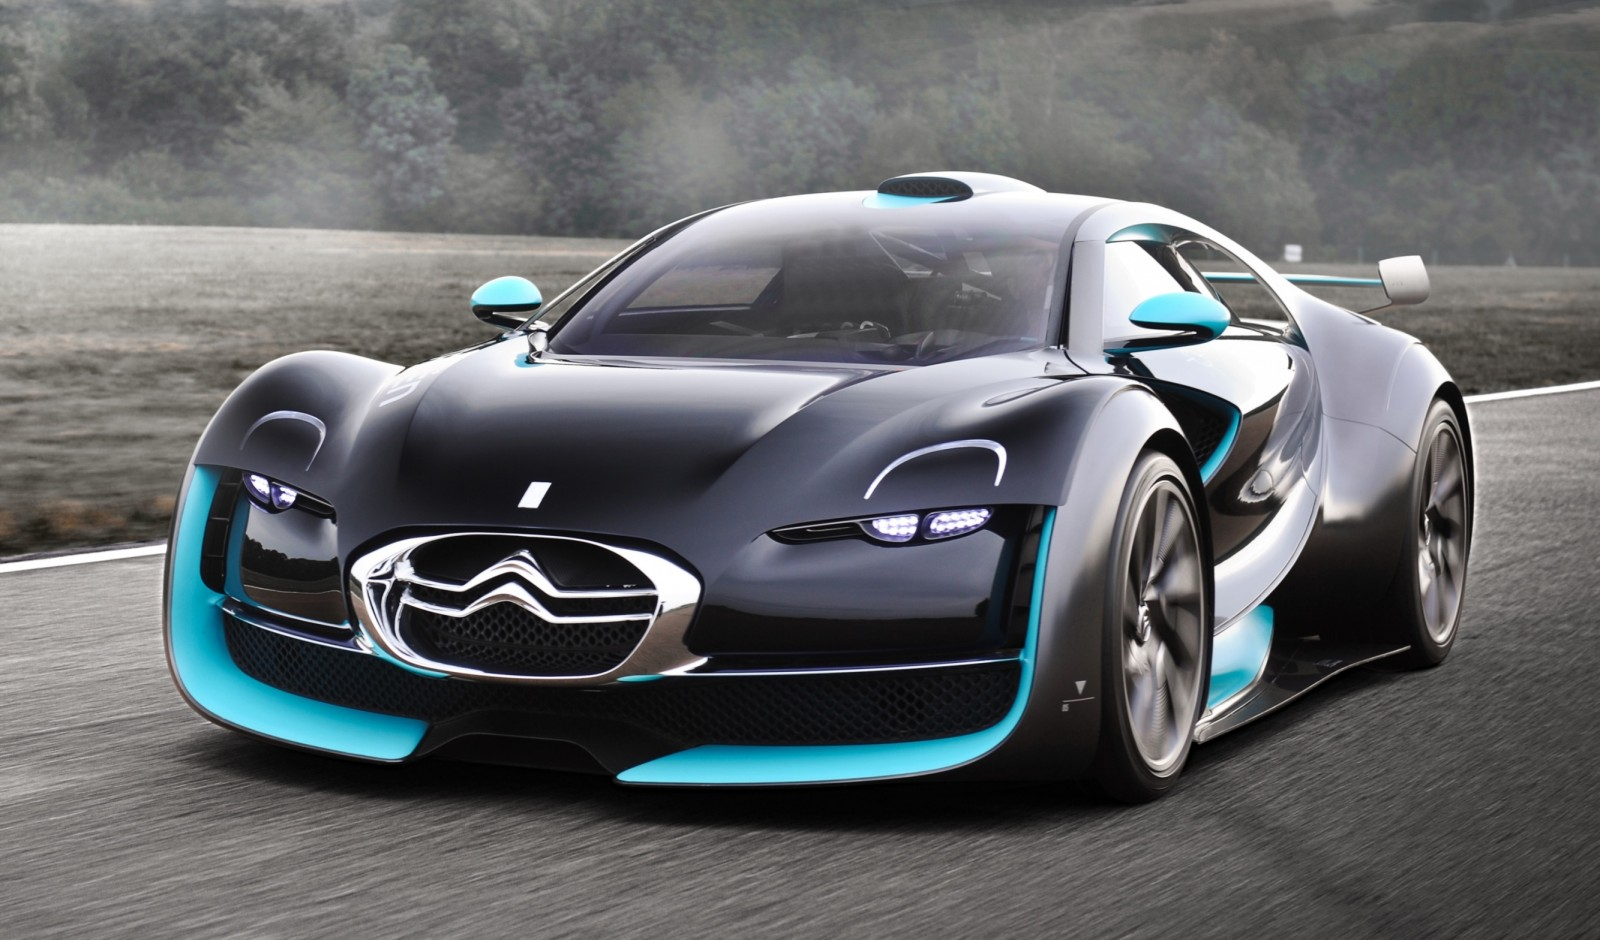 Concept Flashback - 2010 Citroen Survolt 96